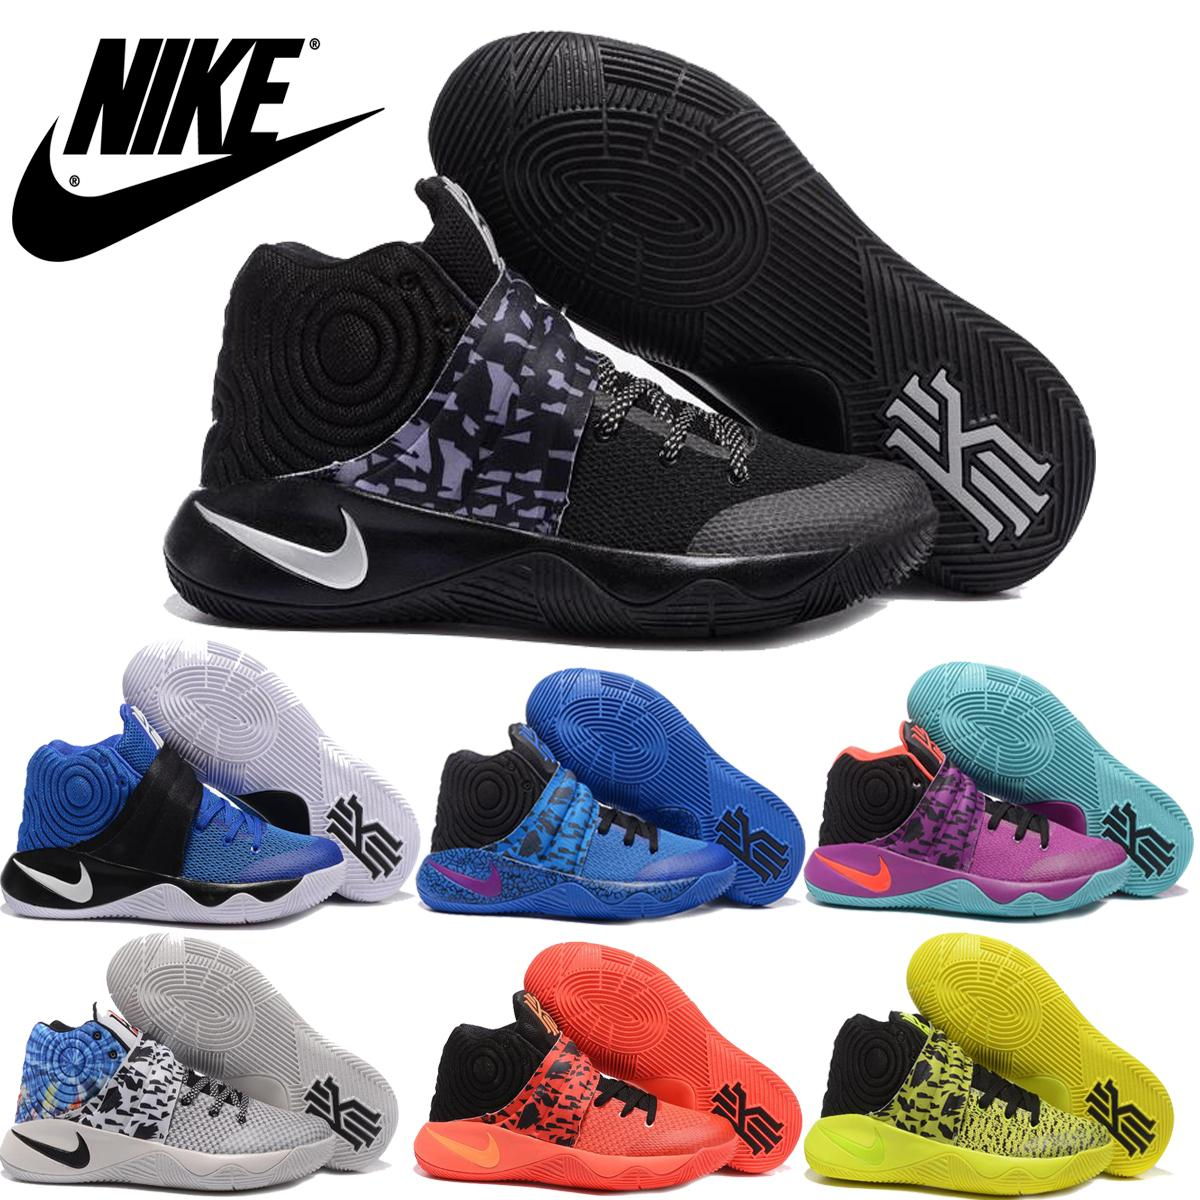 10decab02197 2016 New Nike Kyrie2 Ii Tie Dye Inferno Men Basketball Shoes